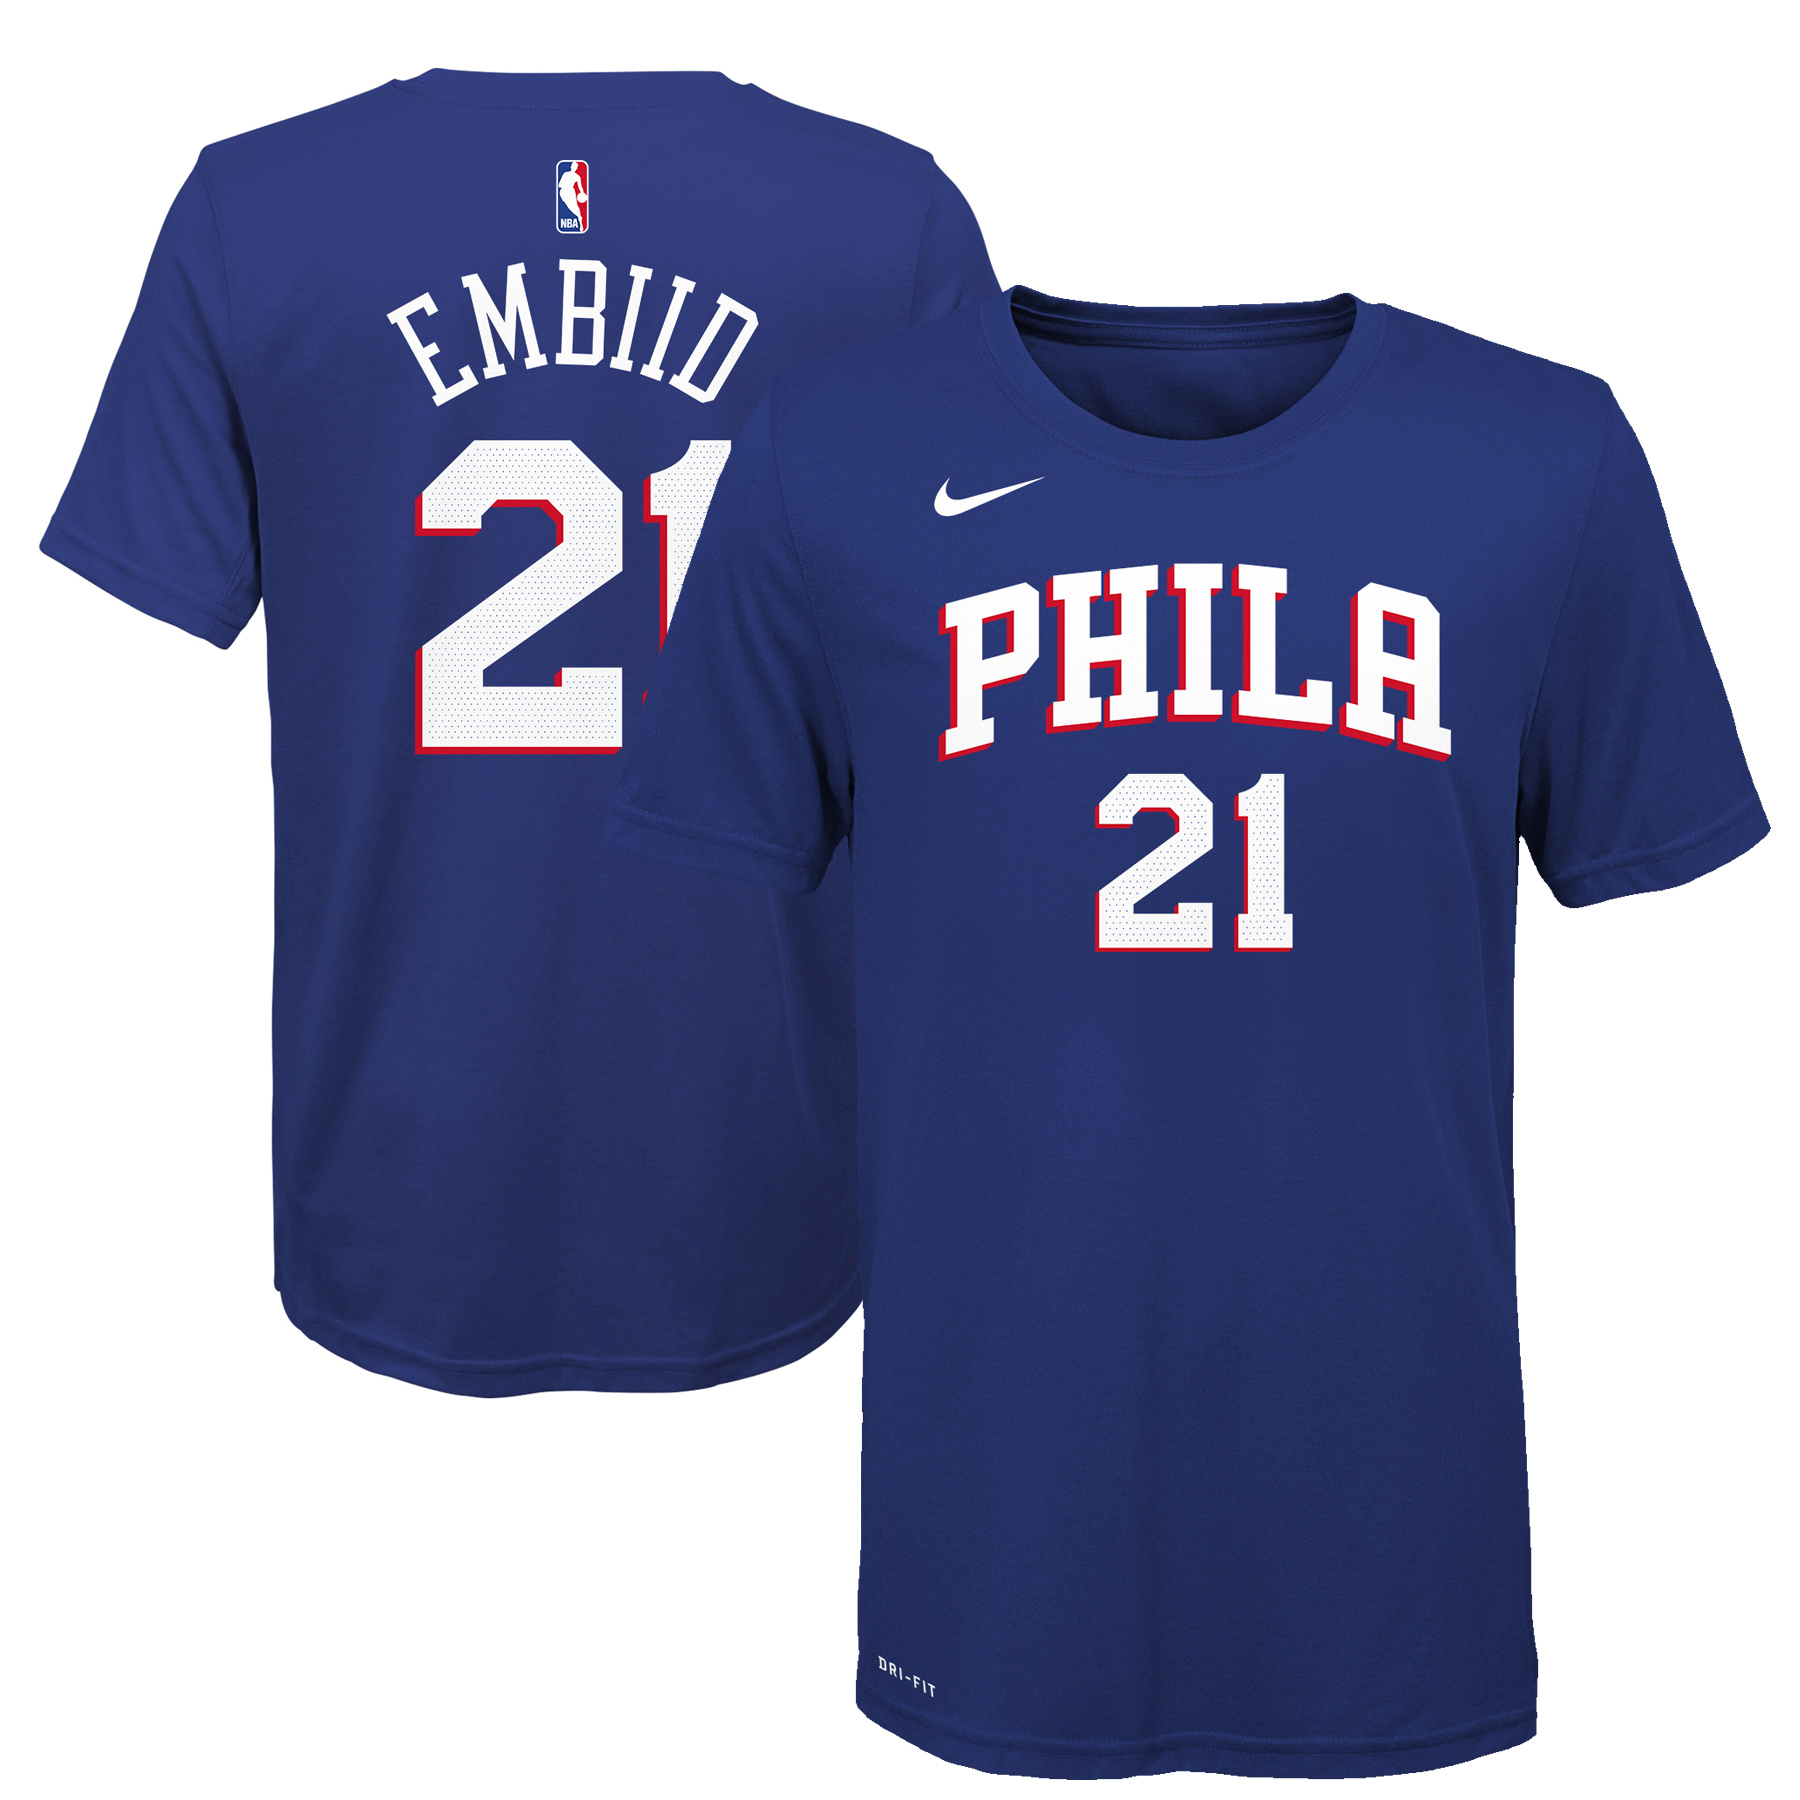 premium selection a79ce b90a5 Joel Embiid Philadelphia 76ers Nike Youth Name & Number T-Shirt - Royal